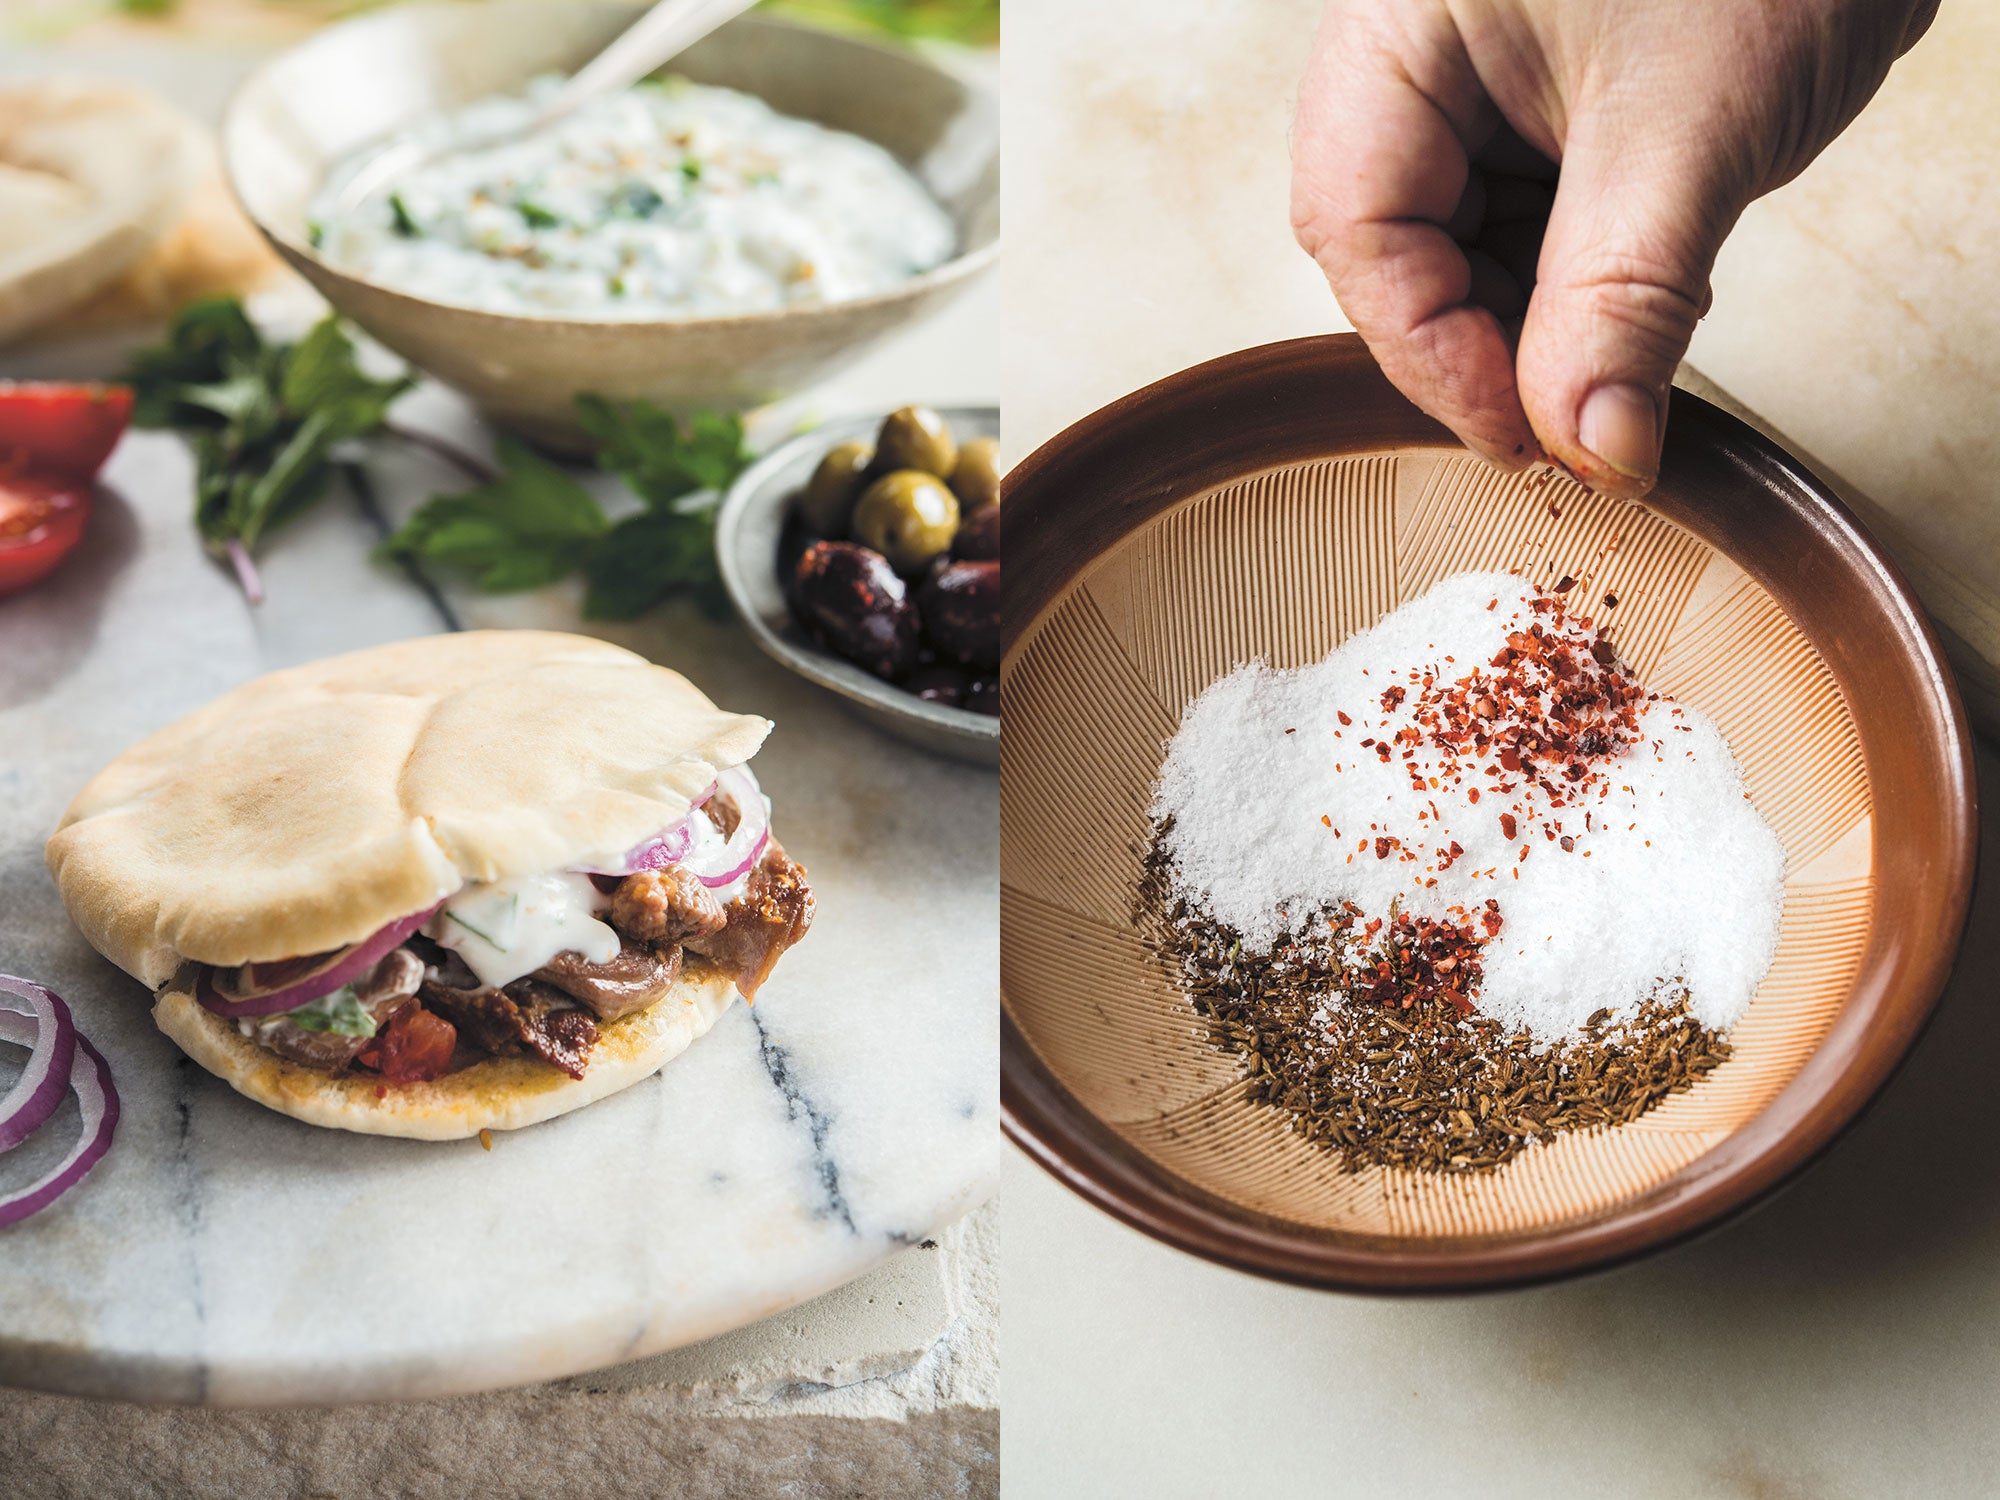 Cumin lamb pitas and cumin salt, ready for grinding in a suribachi. | Photos and lead image: Evan Sung~WHOLE